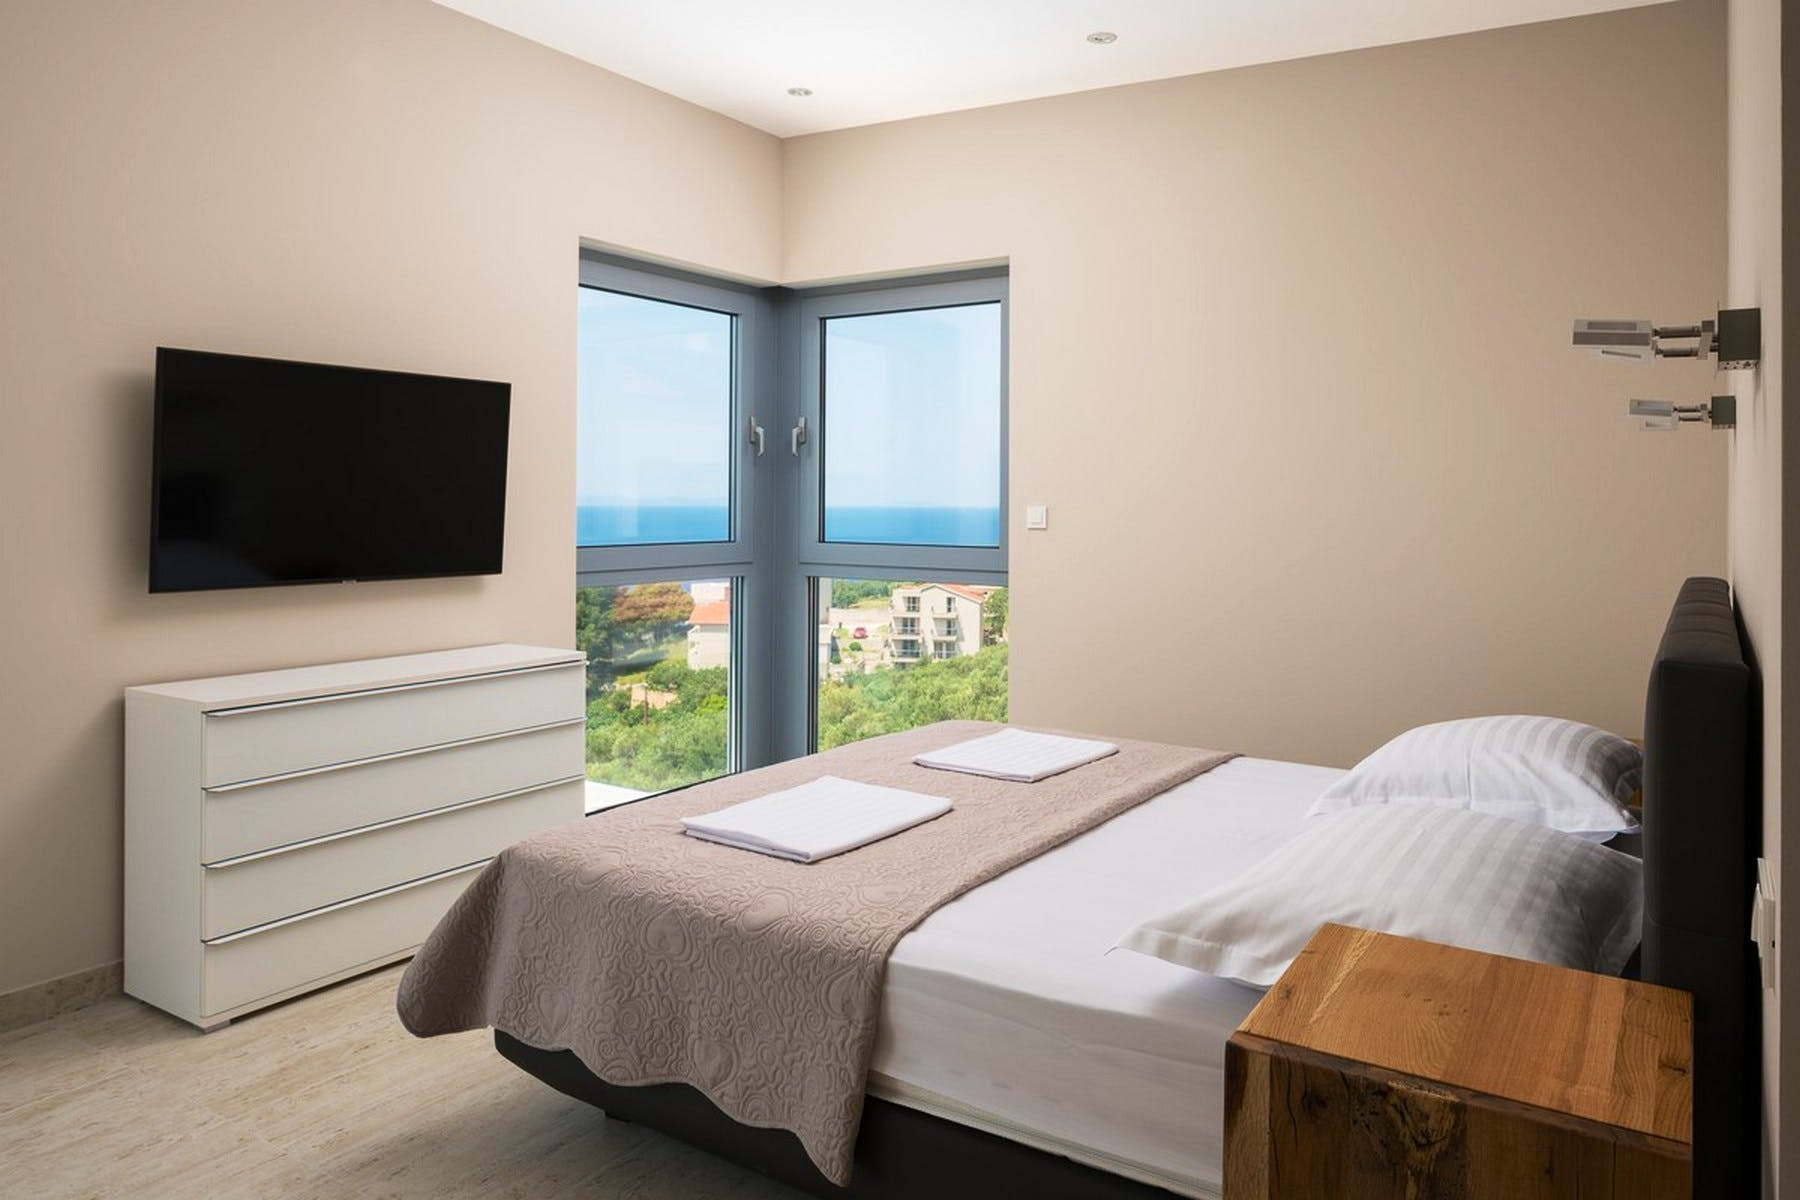 Modernly equipped bedroom with a view